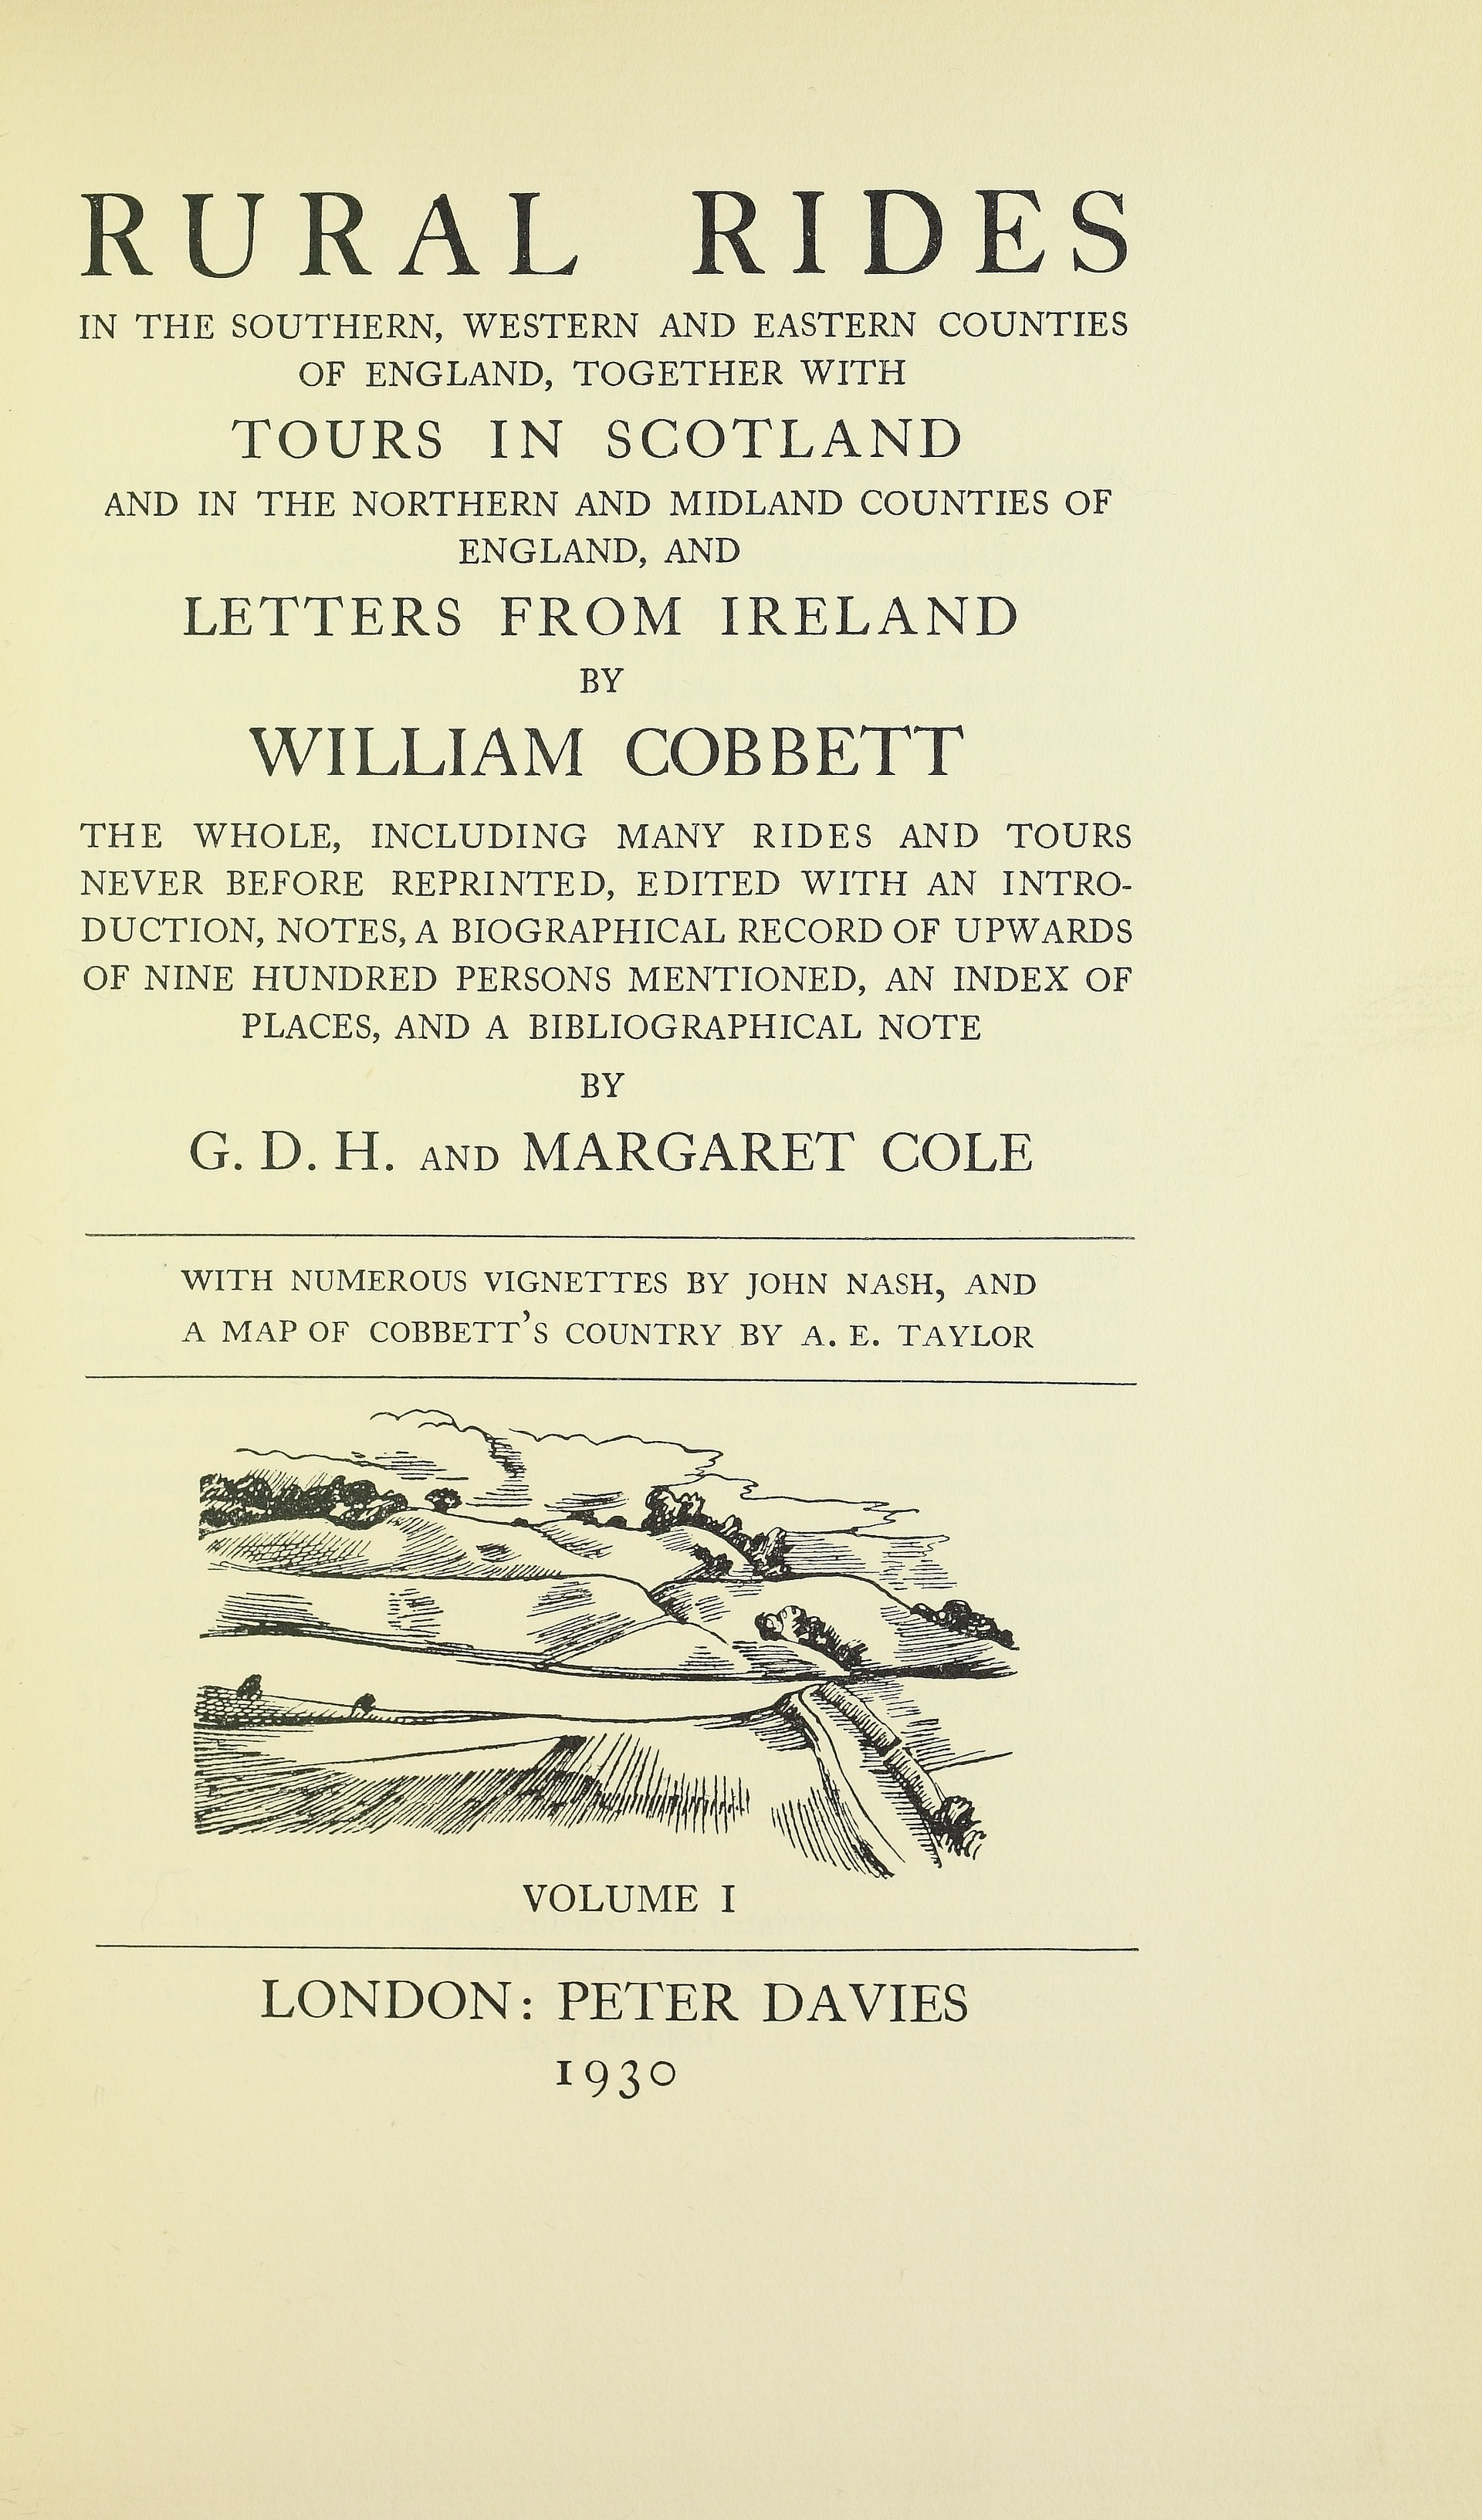 william cobbett essays published in 1830 Peter clark's the english alehouse: 1200-1830 (longman, 1983, sadly out of  print)  for the medical background, roy porter's introduction to thomas trotter's  an essay medical,  cobbett, william, cottage economy: containing  information relative to the  newcastle-upon-tyne: cambridge scholars  publishing, 2010.